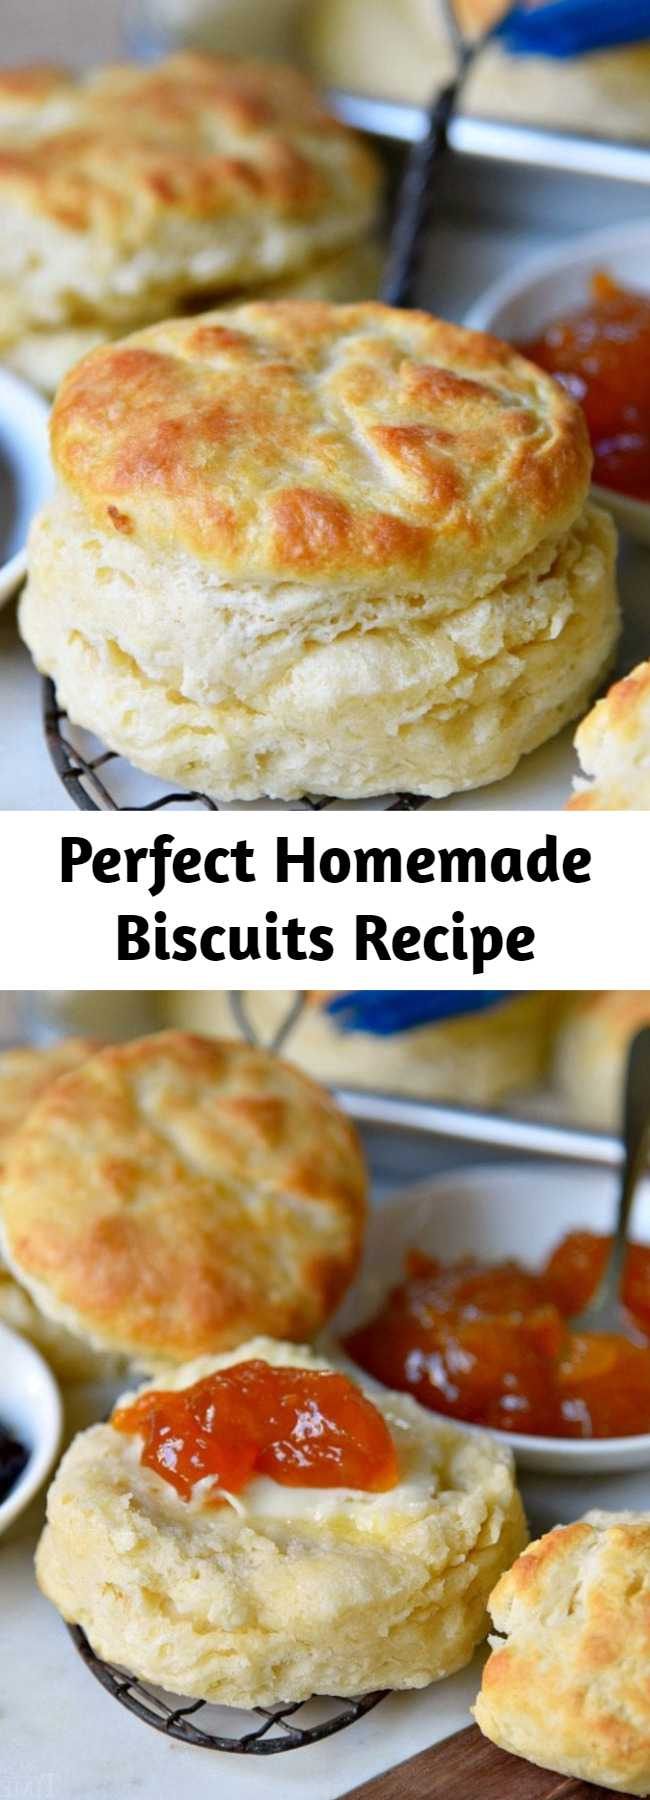 Perfect Homemade Biscuits Recipe - The BEST Homemade Biscuit recipe you'll ever try! These easy, homemade biscuits are soft, fluffy, made completely from scratch and can be on your table in about 15 minutes! A weekend staple in our house! #biscuit #biscuits #homemade #fromscratch #breakfast #brunch #recipe #recipes #baking